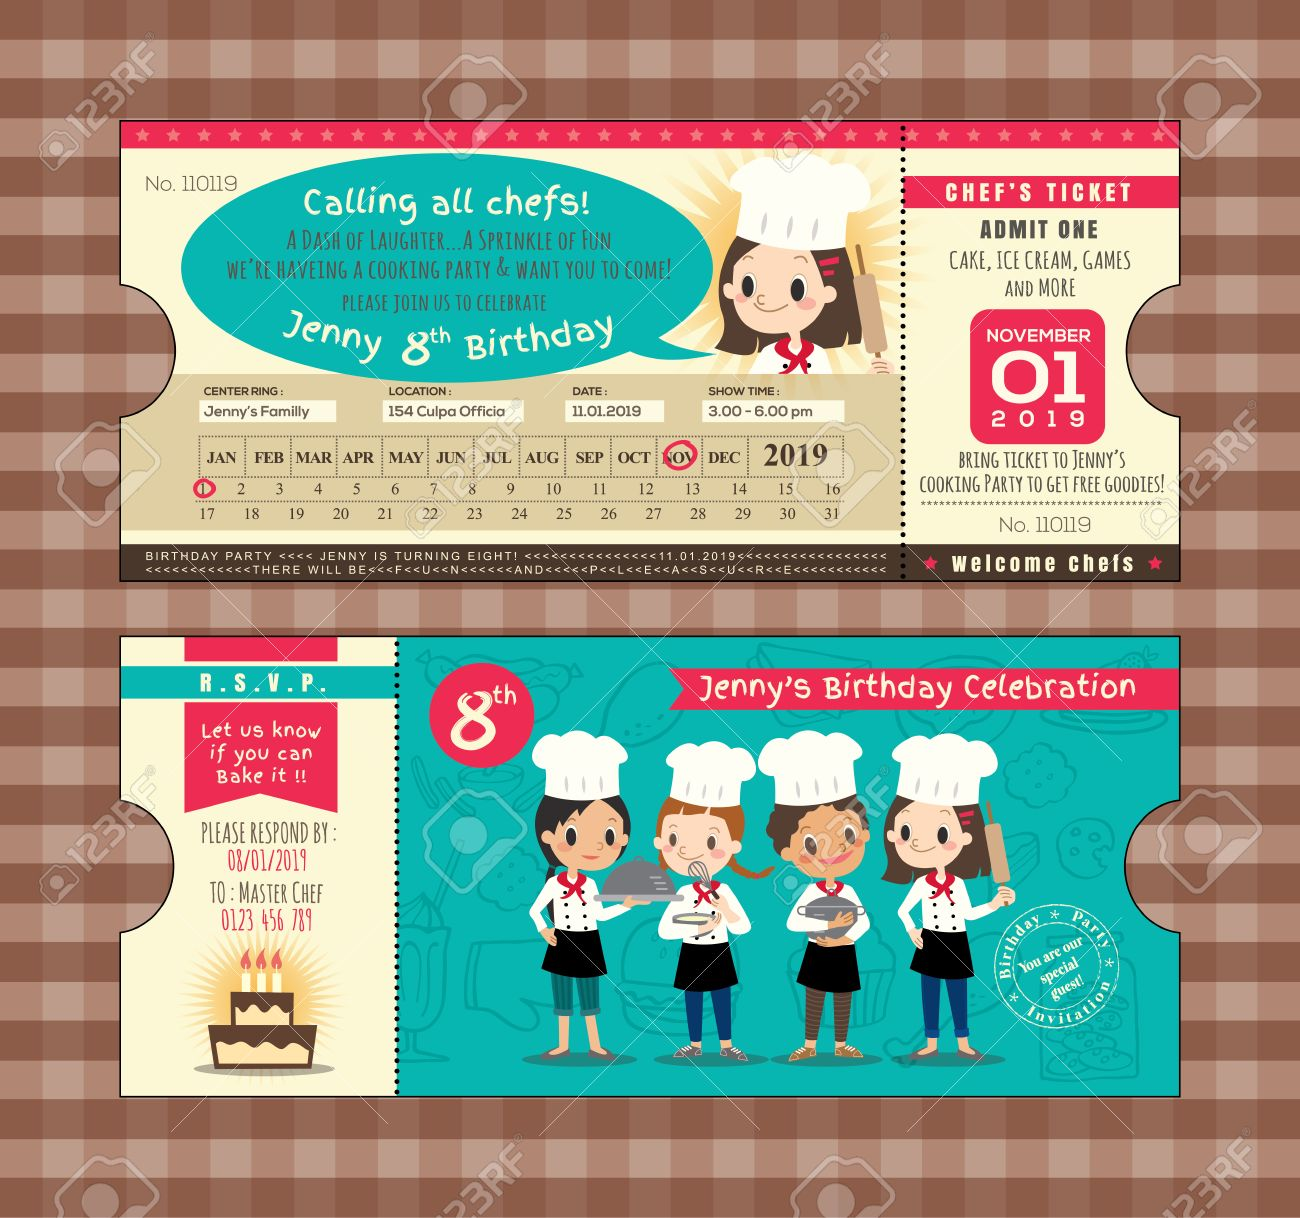 ticket birthday card party invitation template with chefs cooking